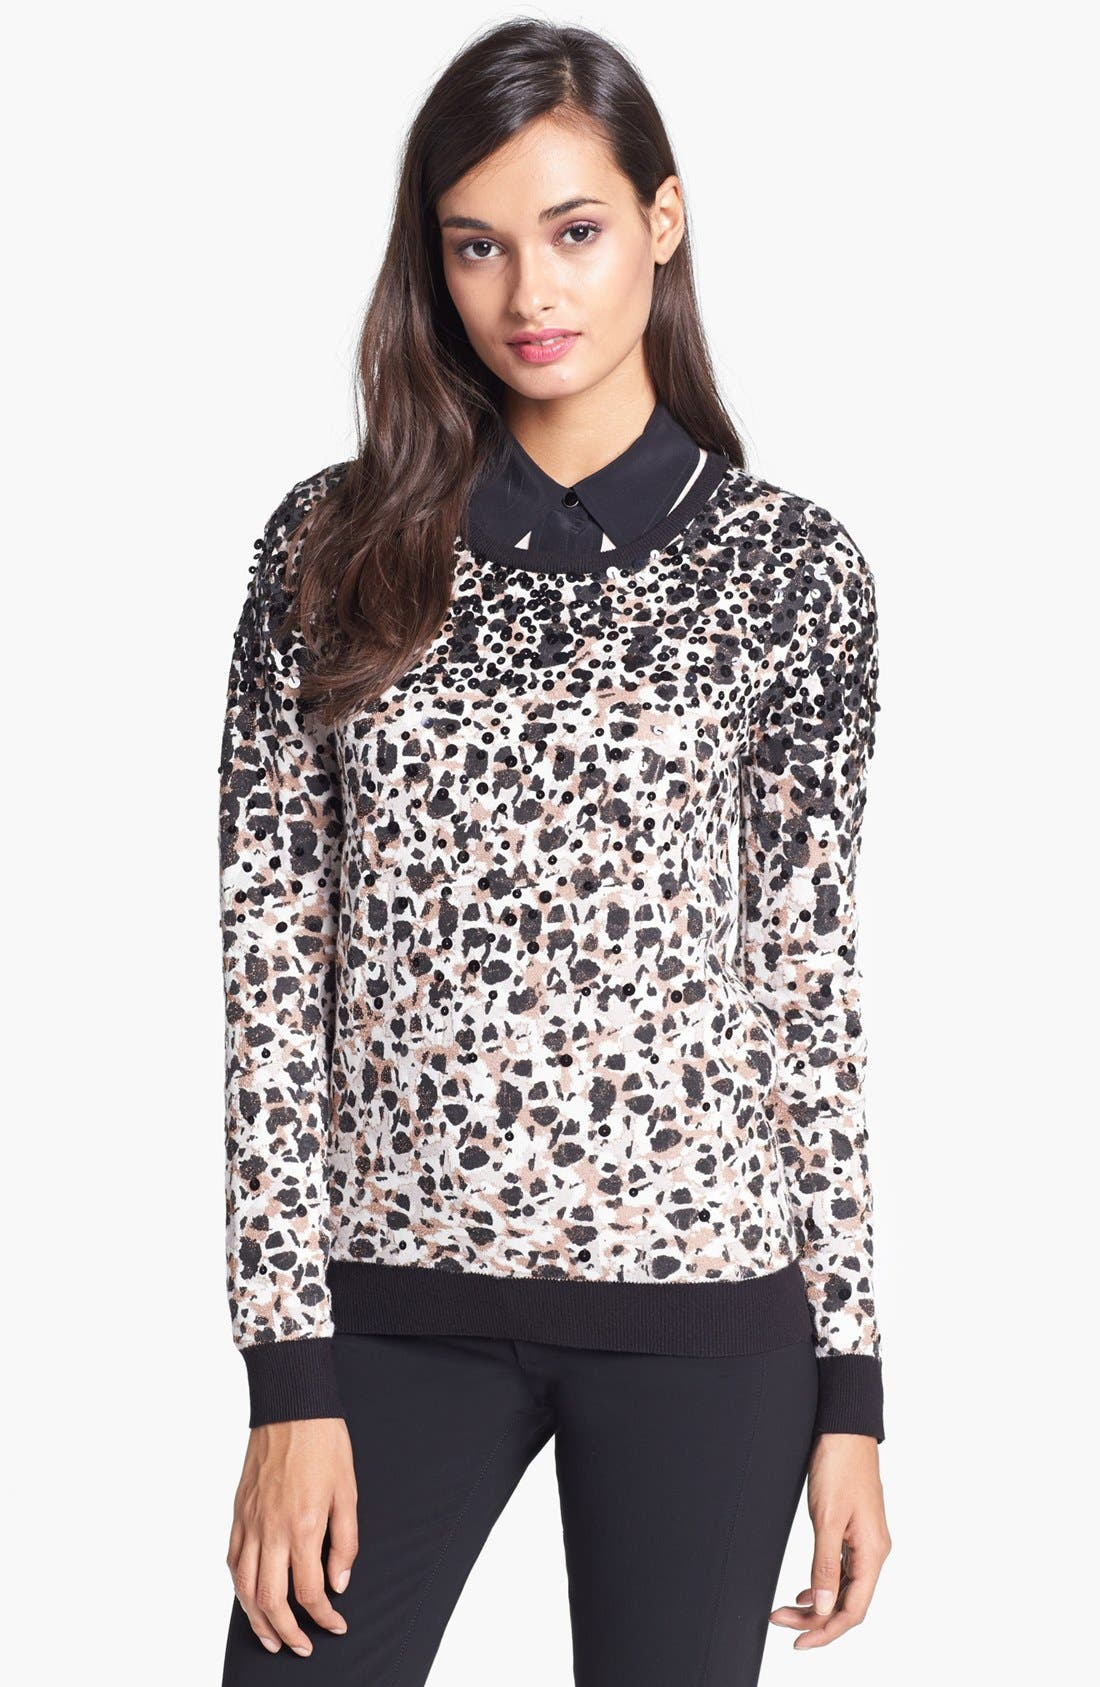 Main Image - MARC BY MARC JACOBS 'Isa' Sequin Crewneck Sweater